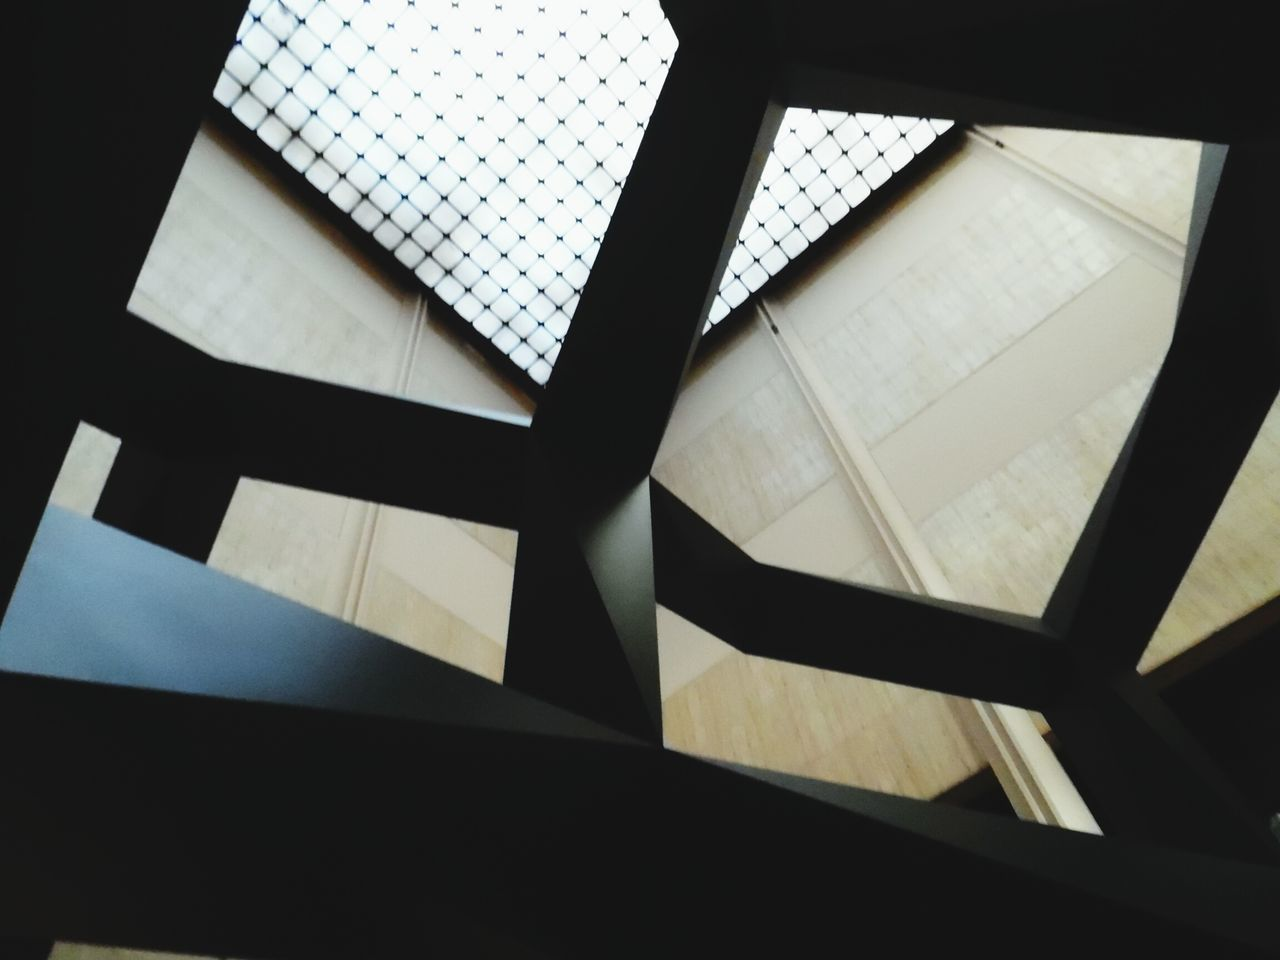 indoors, window, low angle view, no people, education, architecture, built structure, day, close-up